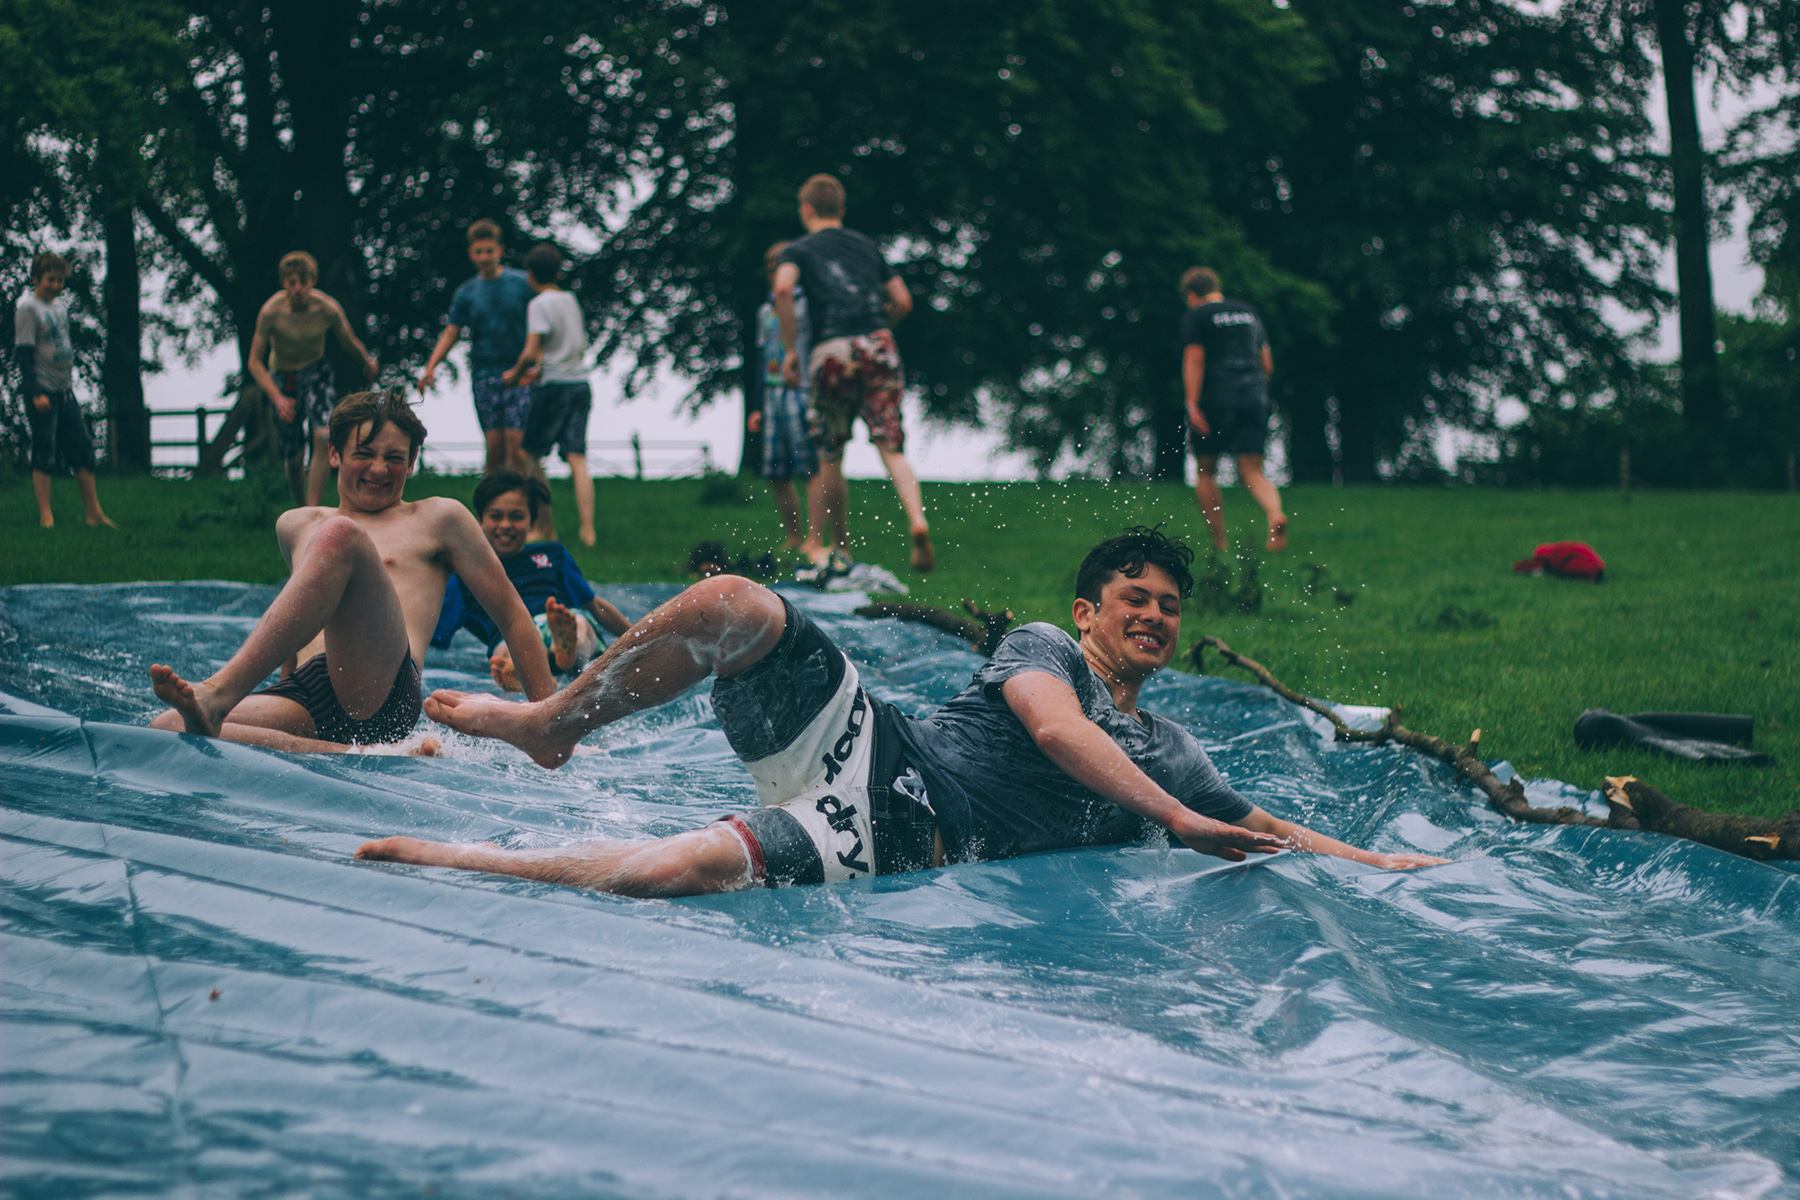 Teenagers on a slip and slide